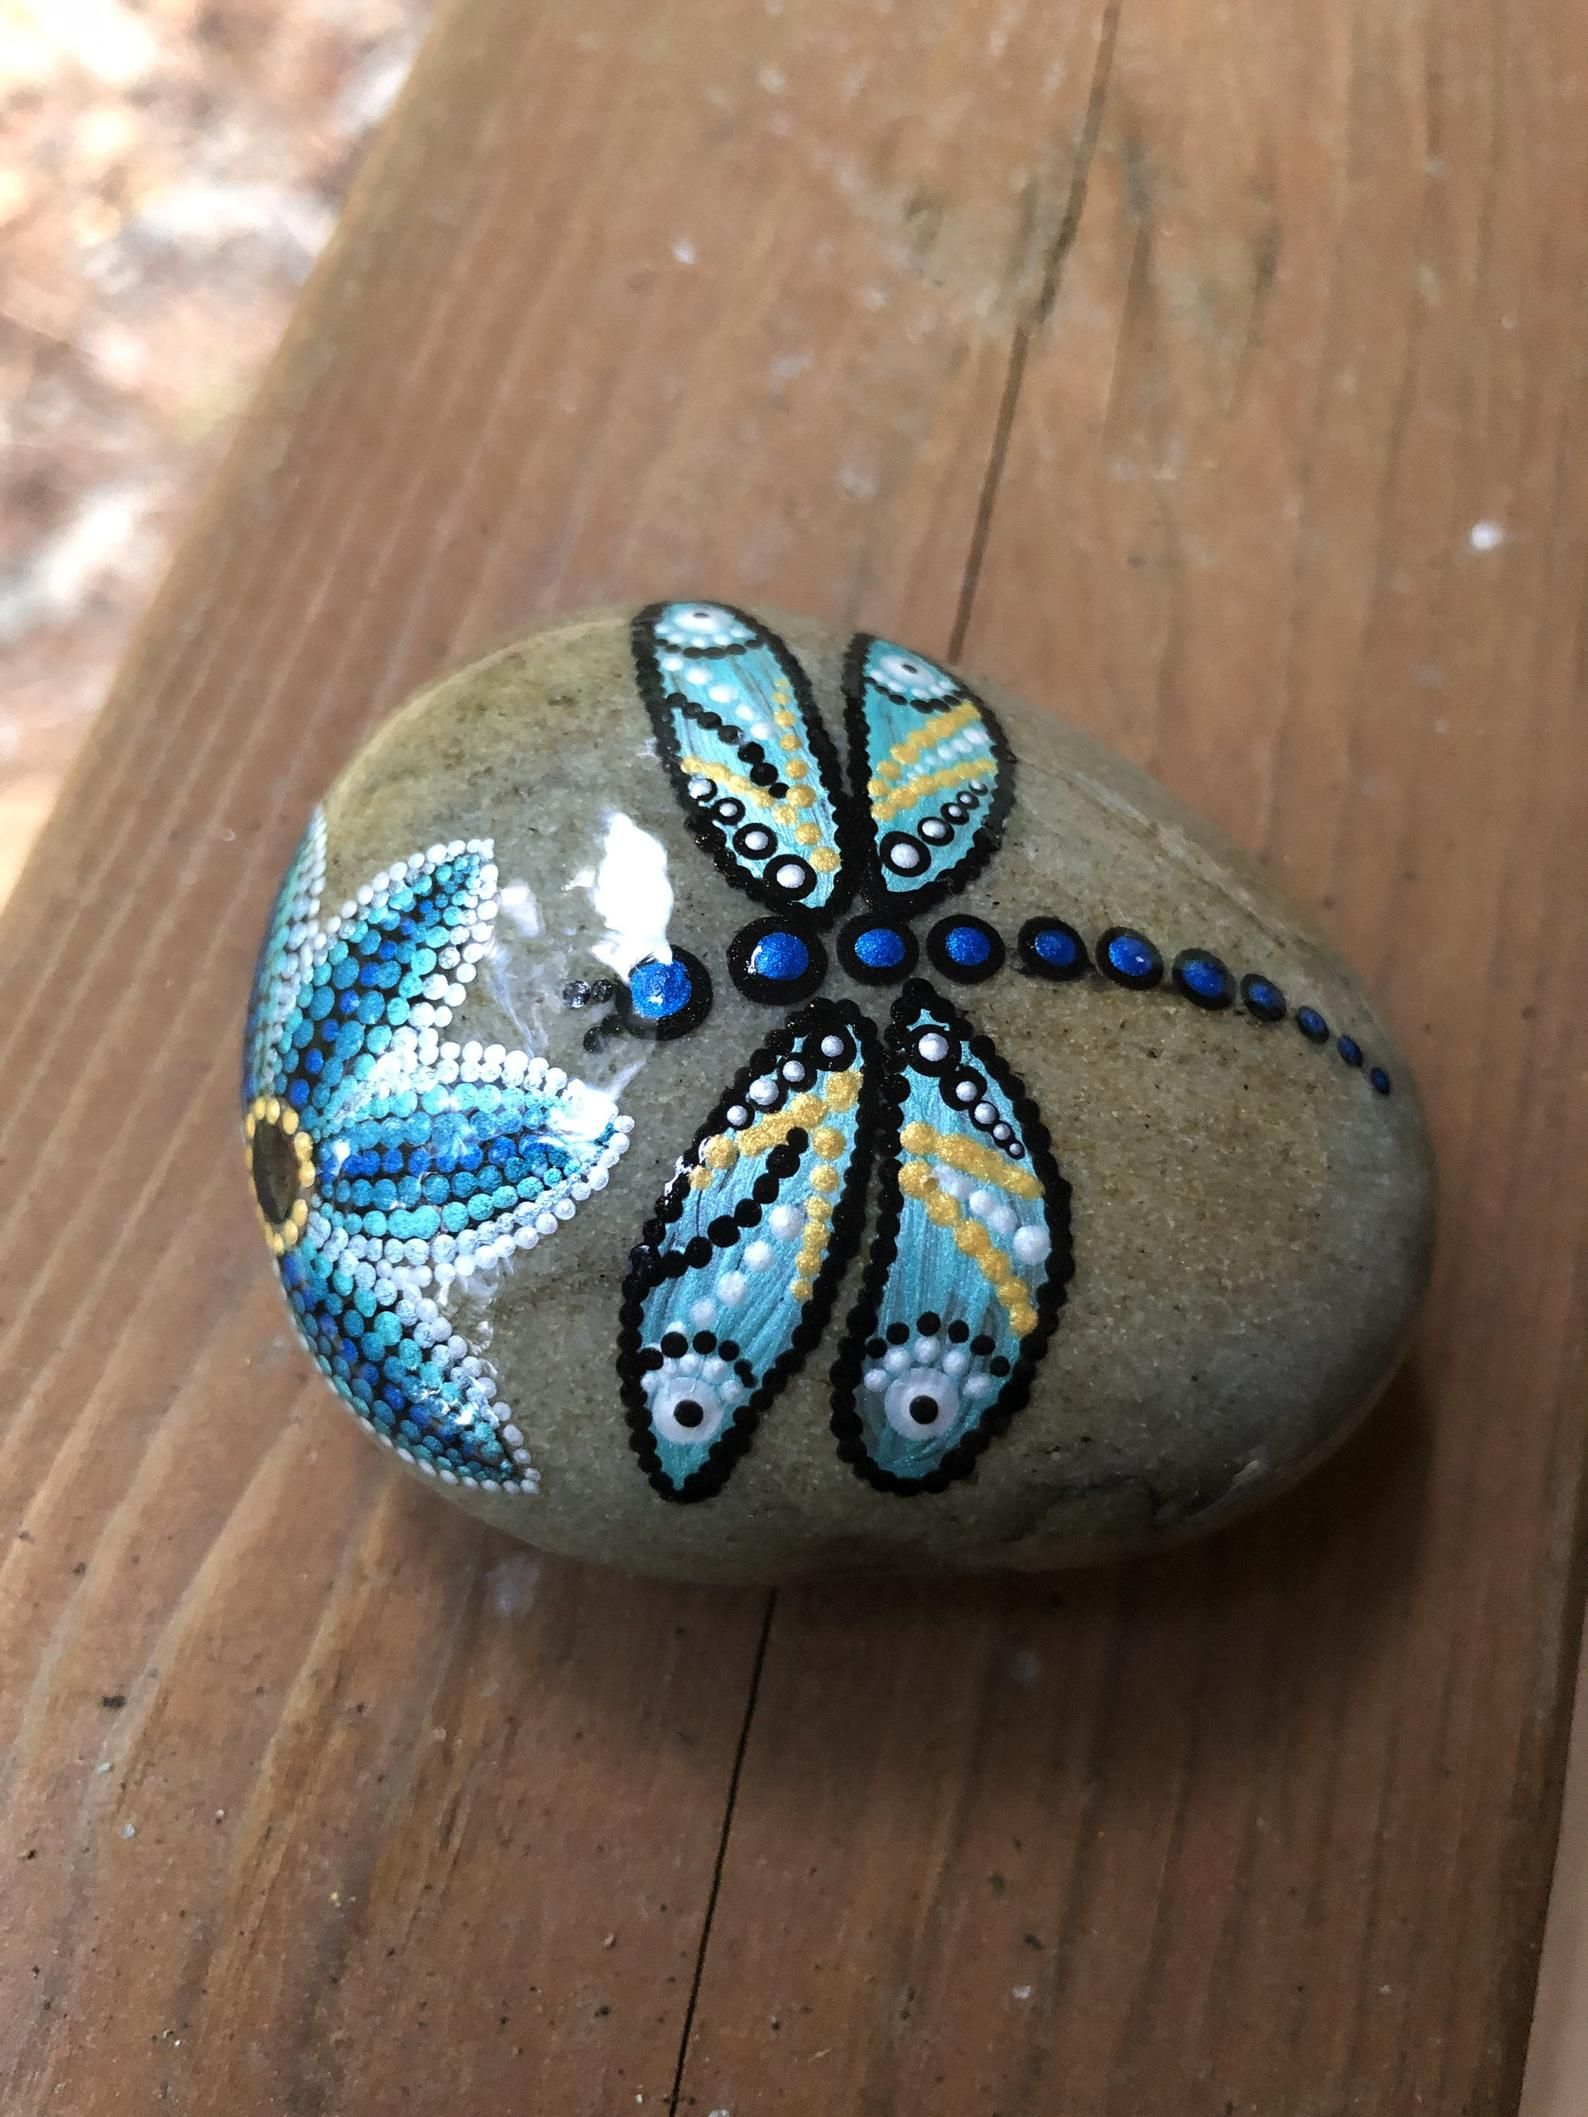 Blue dragonfly and flower dot painted on rock